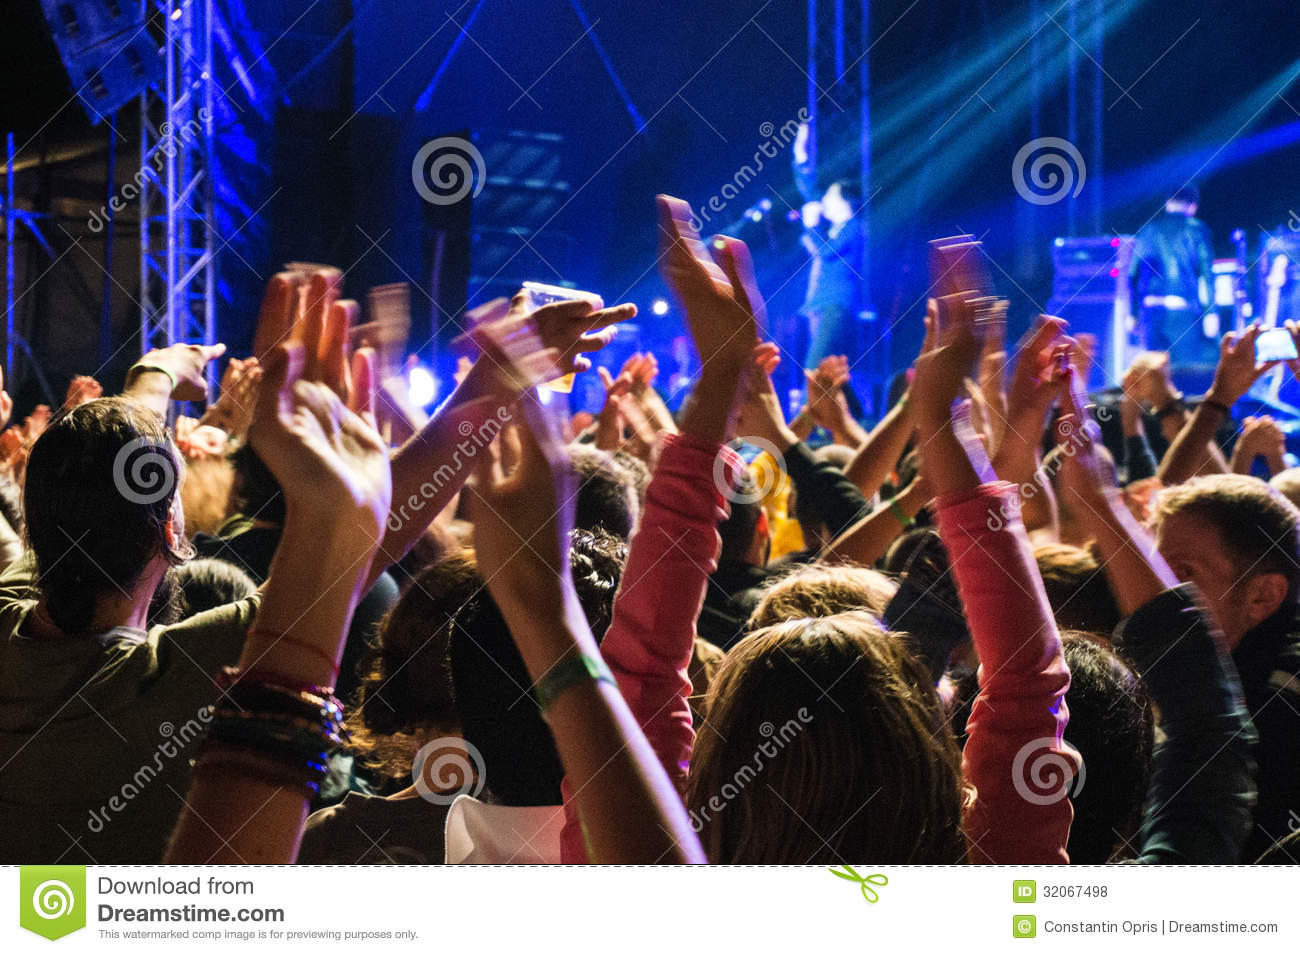 Clapping hands at concert